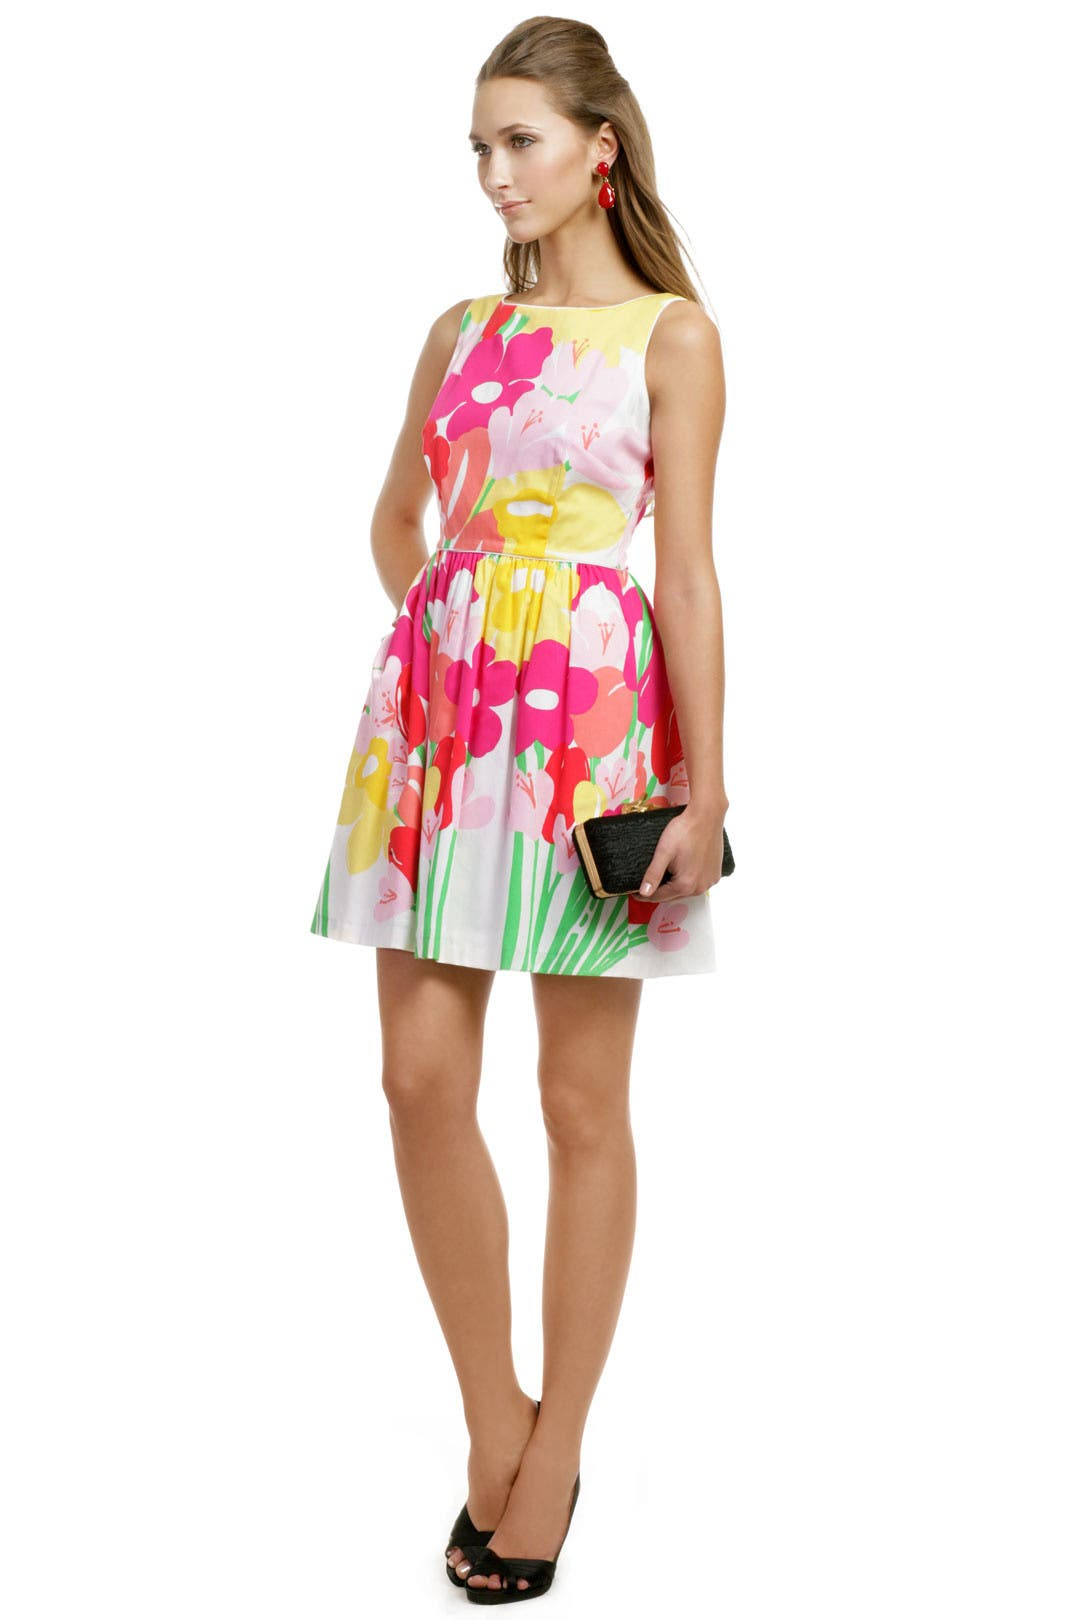 May Flowers Dress by Lilly Pulitzer